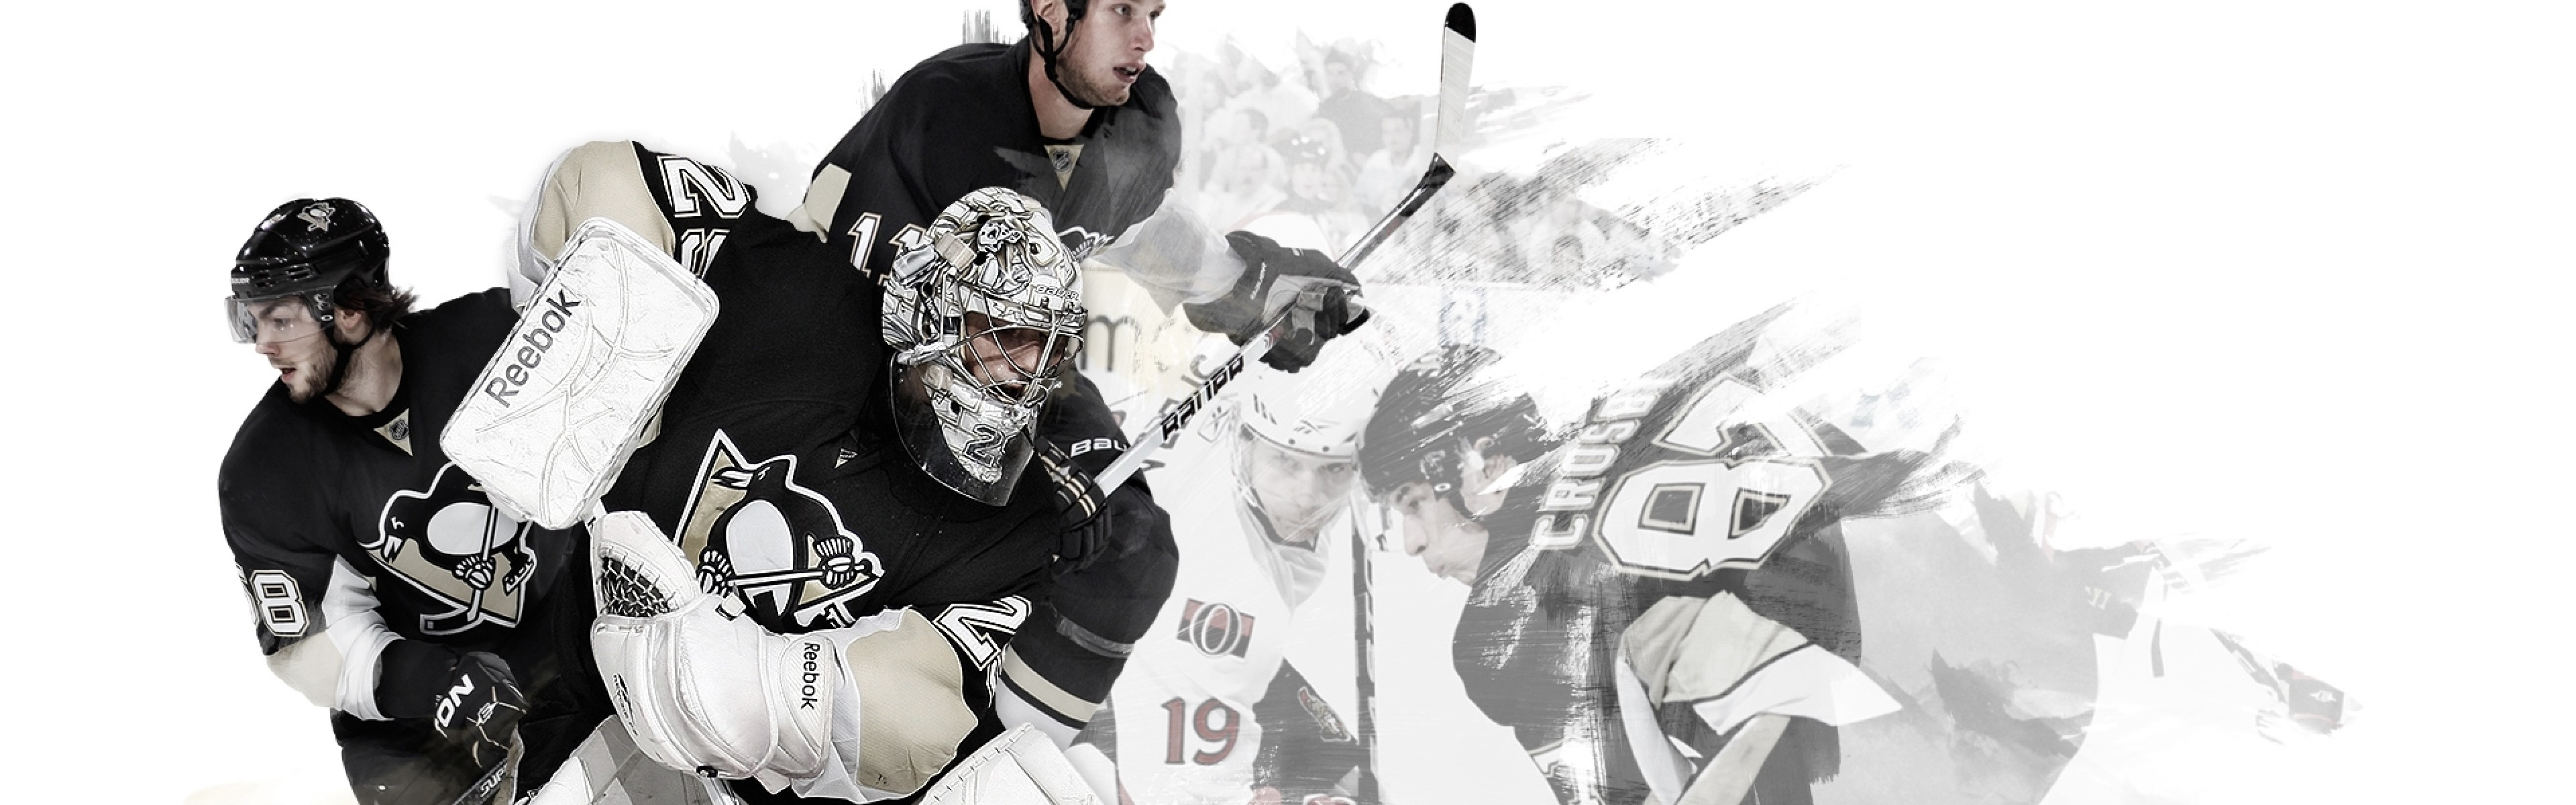 3840x1200 Related Wallpapers sidney crosby, pittsburgh. Preview sidney crosby